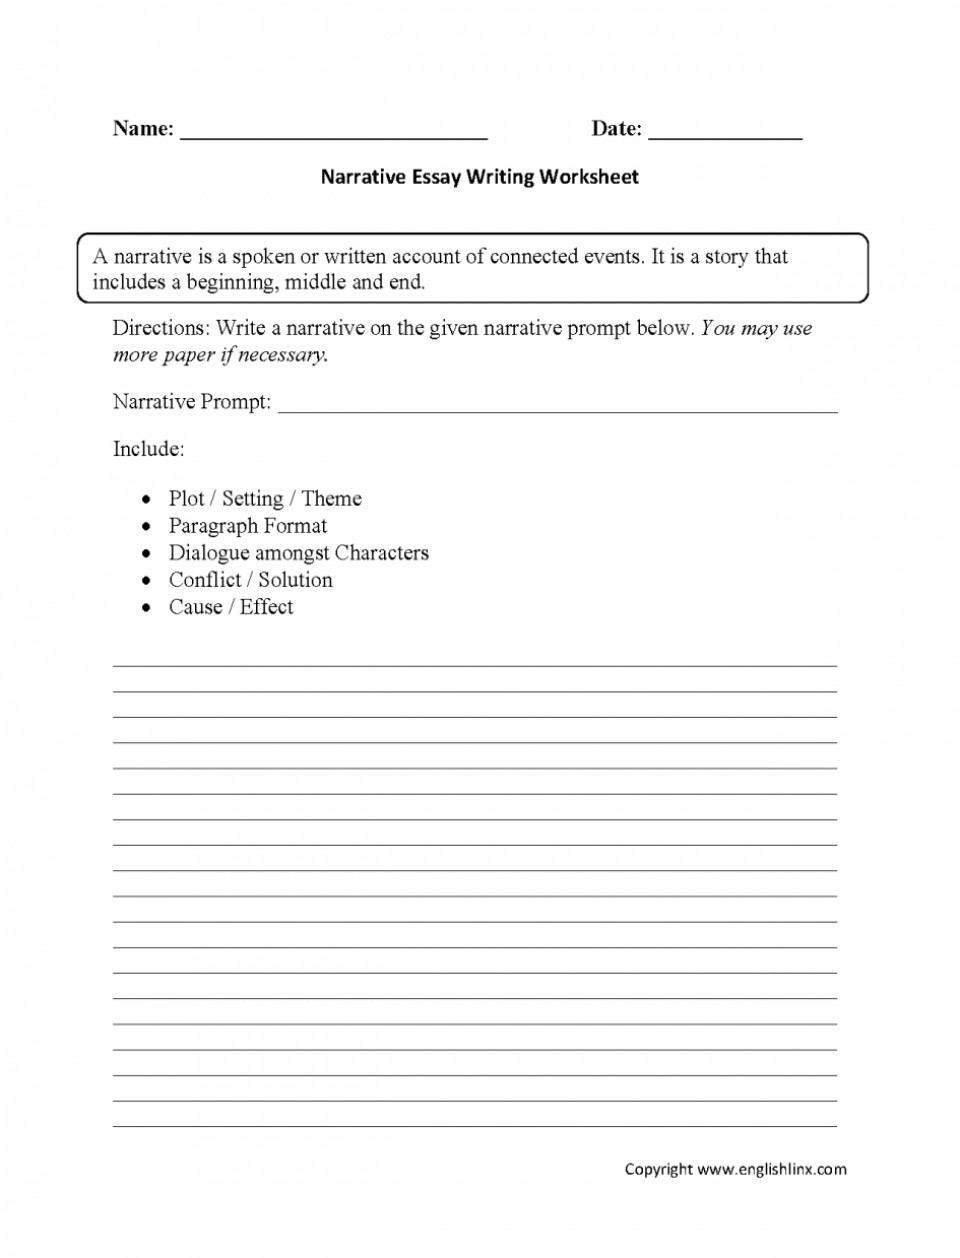 002 Essay Grader Example 3rd Grade Paragraph Writing Worksheets Download Free Third Printa Worksheet Awful Online For Teachers Calculator 960